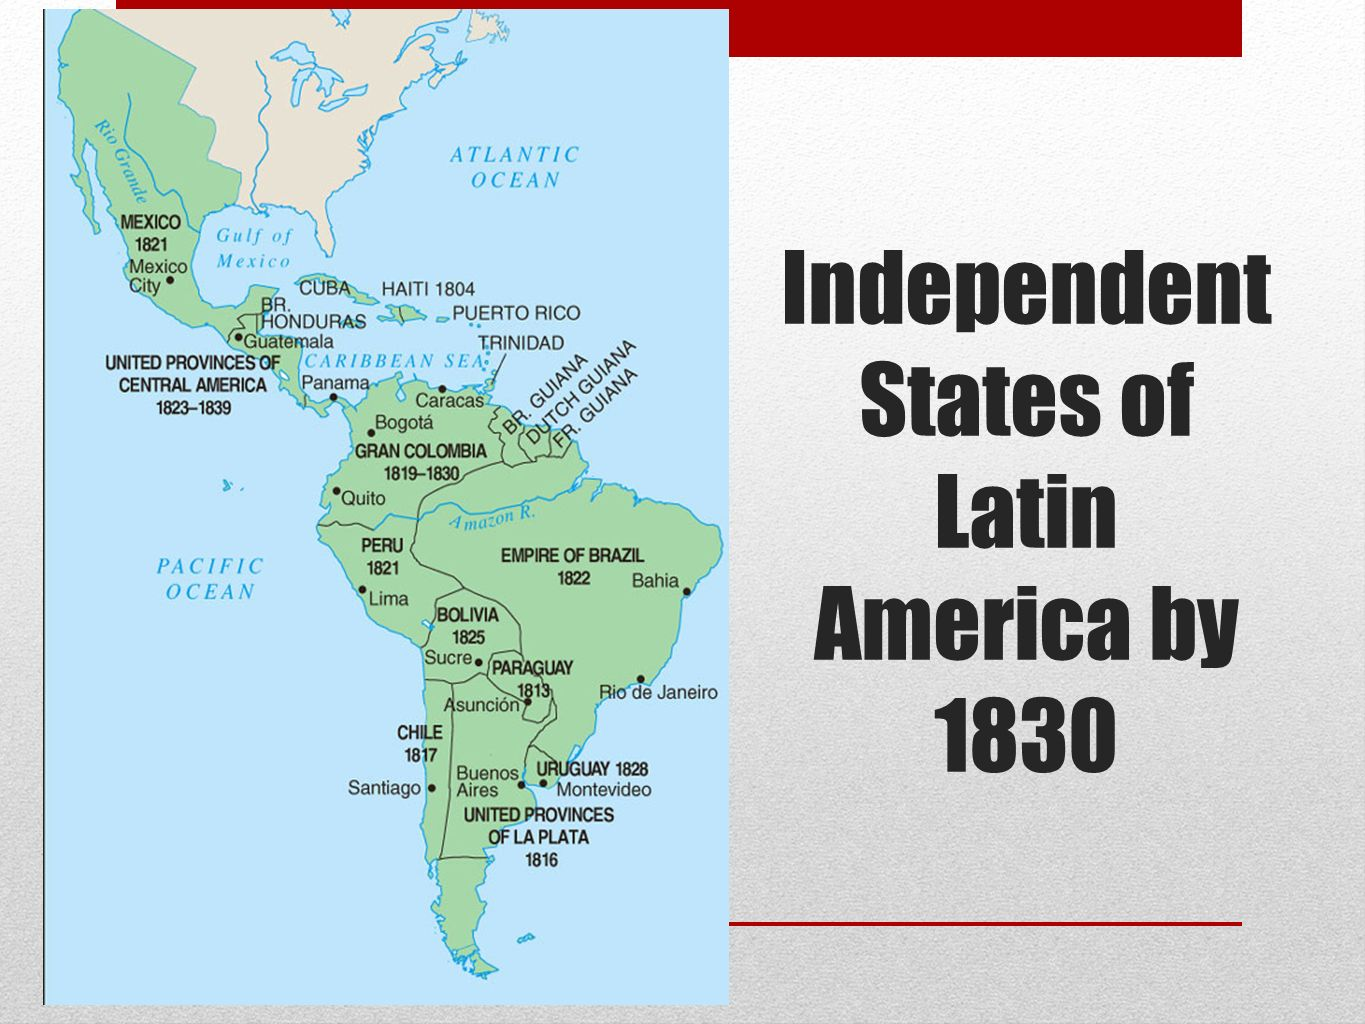 Independent States of Latin America by 1830